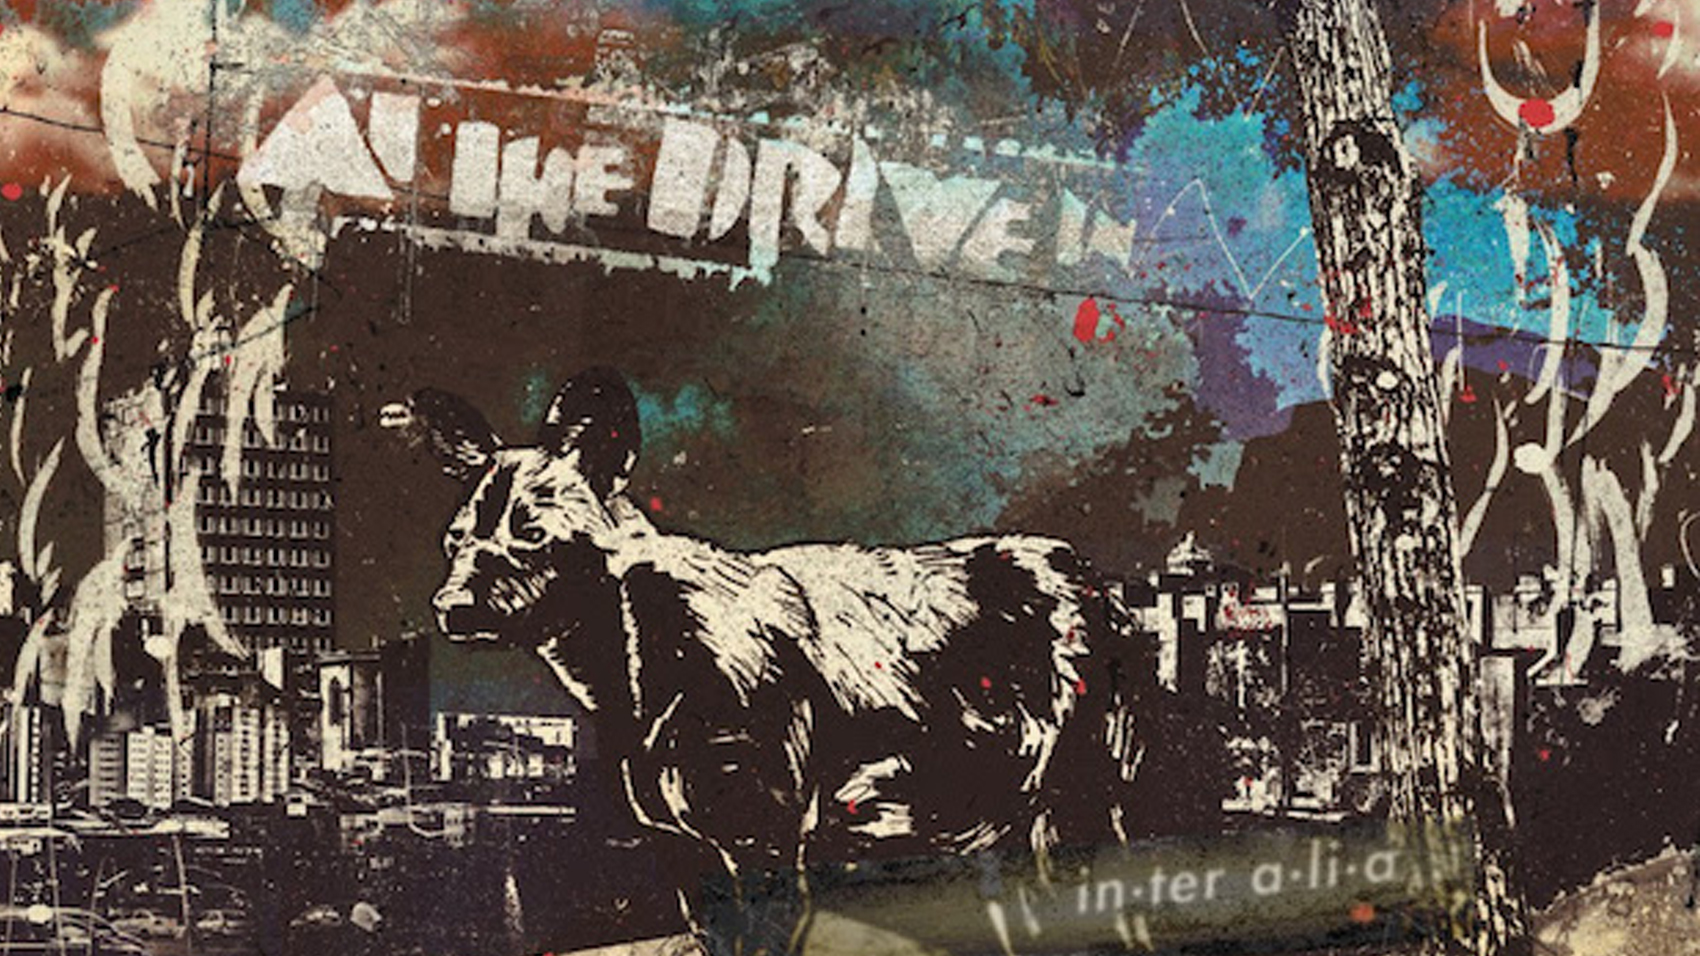 At The Drive-In ‒ «in • ter a • li • a»